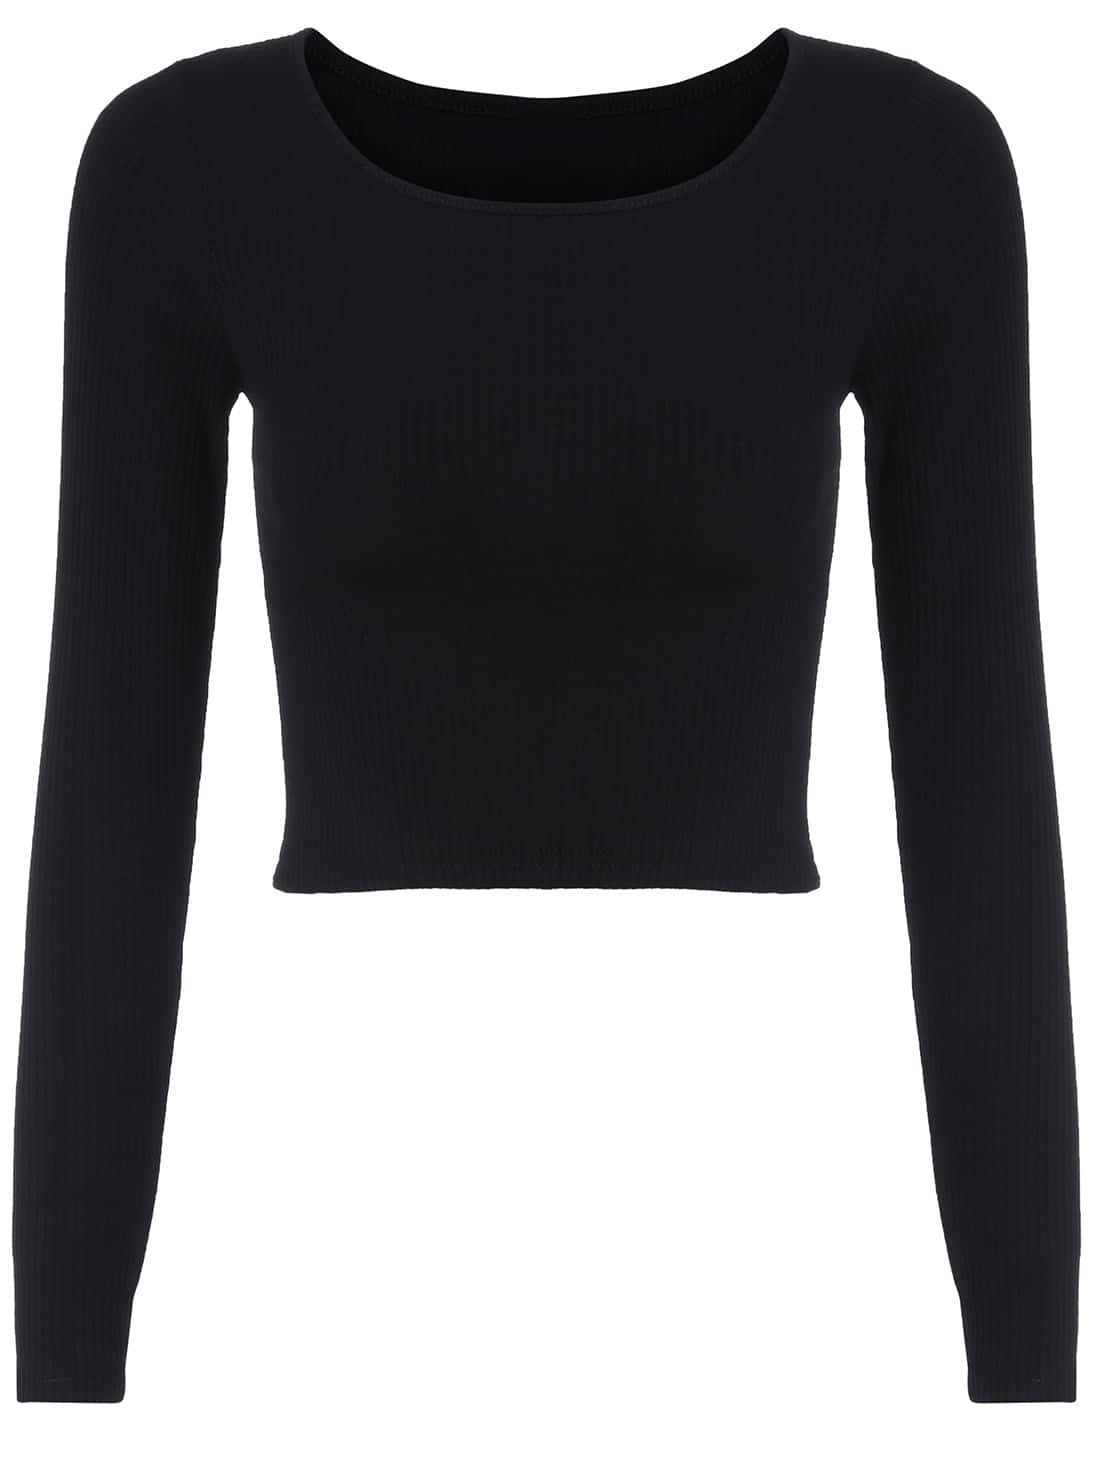 9b6c3edc19ee4 Long Sleeve Crop Black T-shirt EmmaCloth-Women Fast Fashion Online